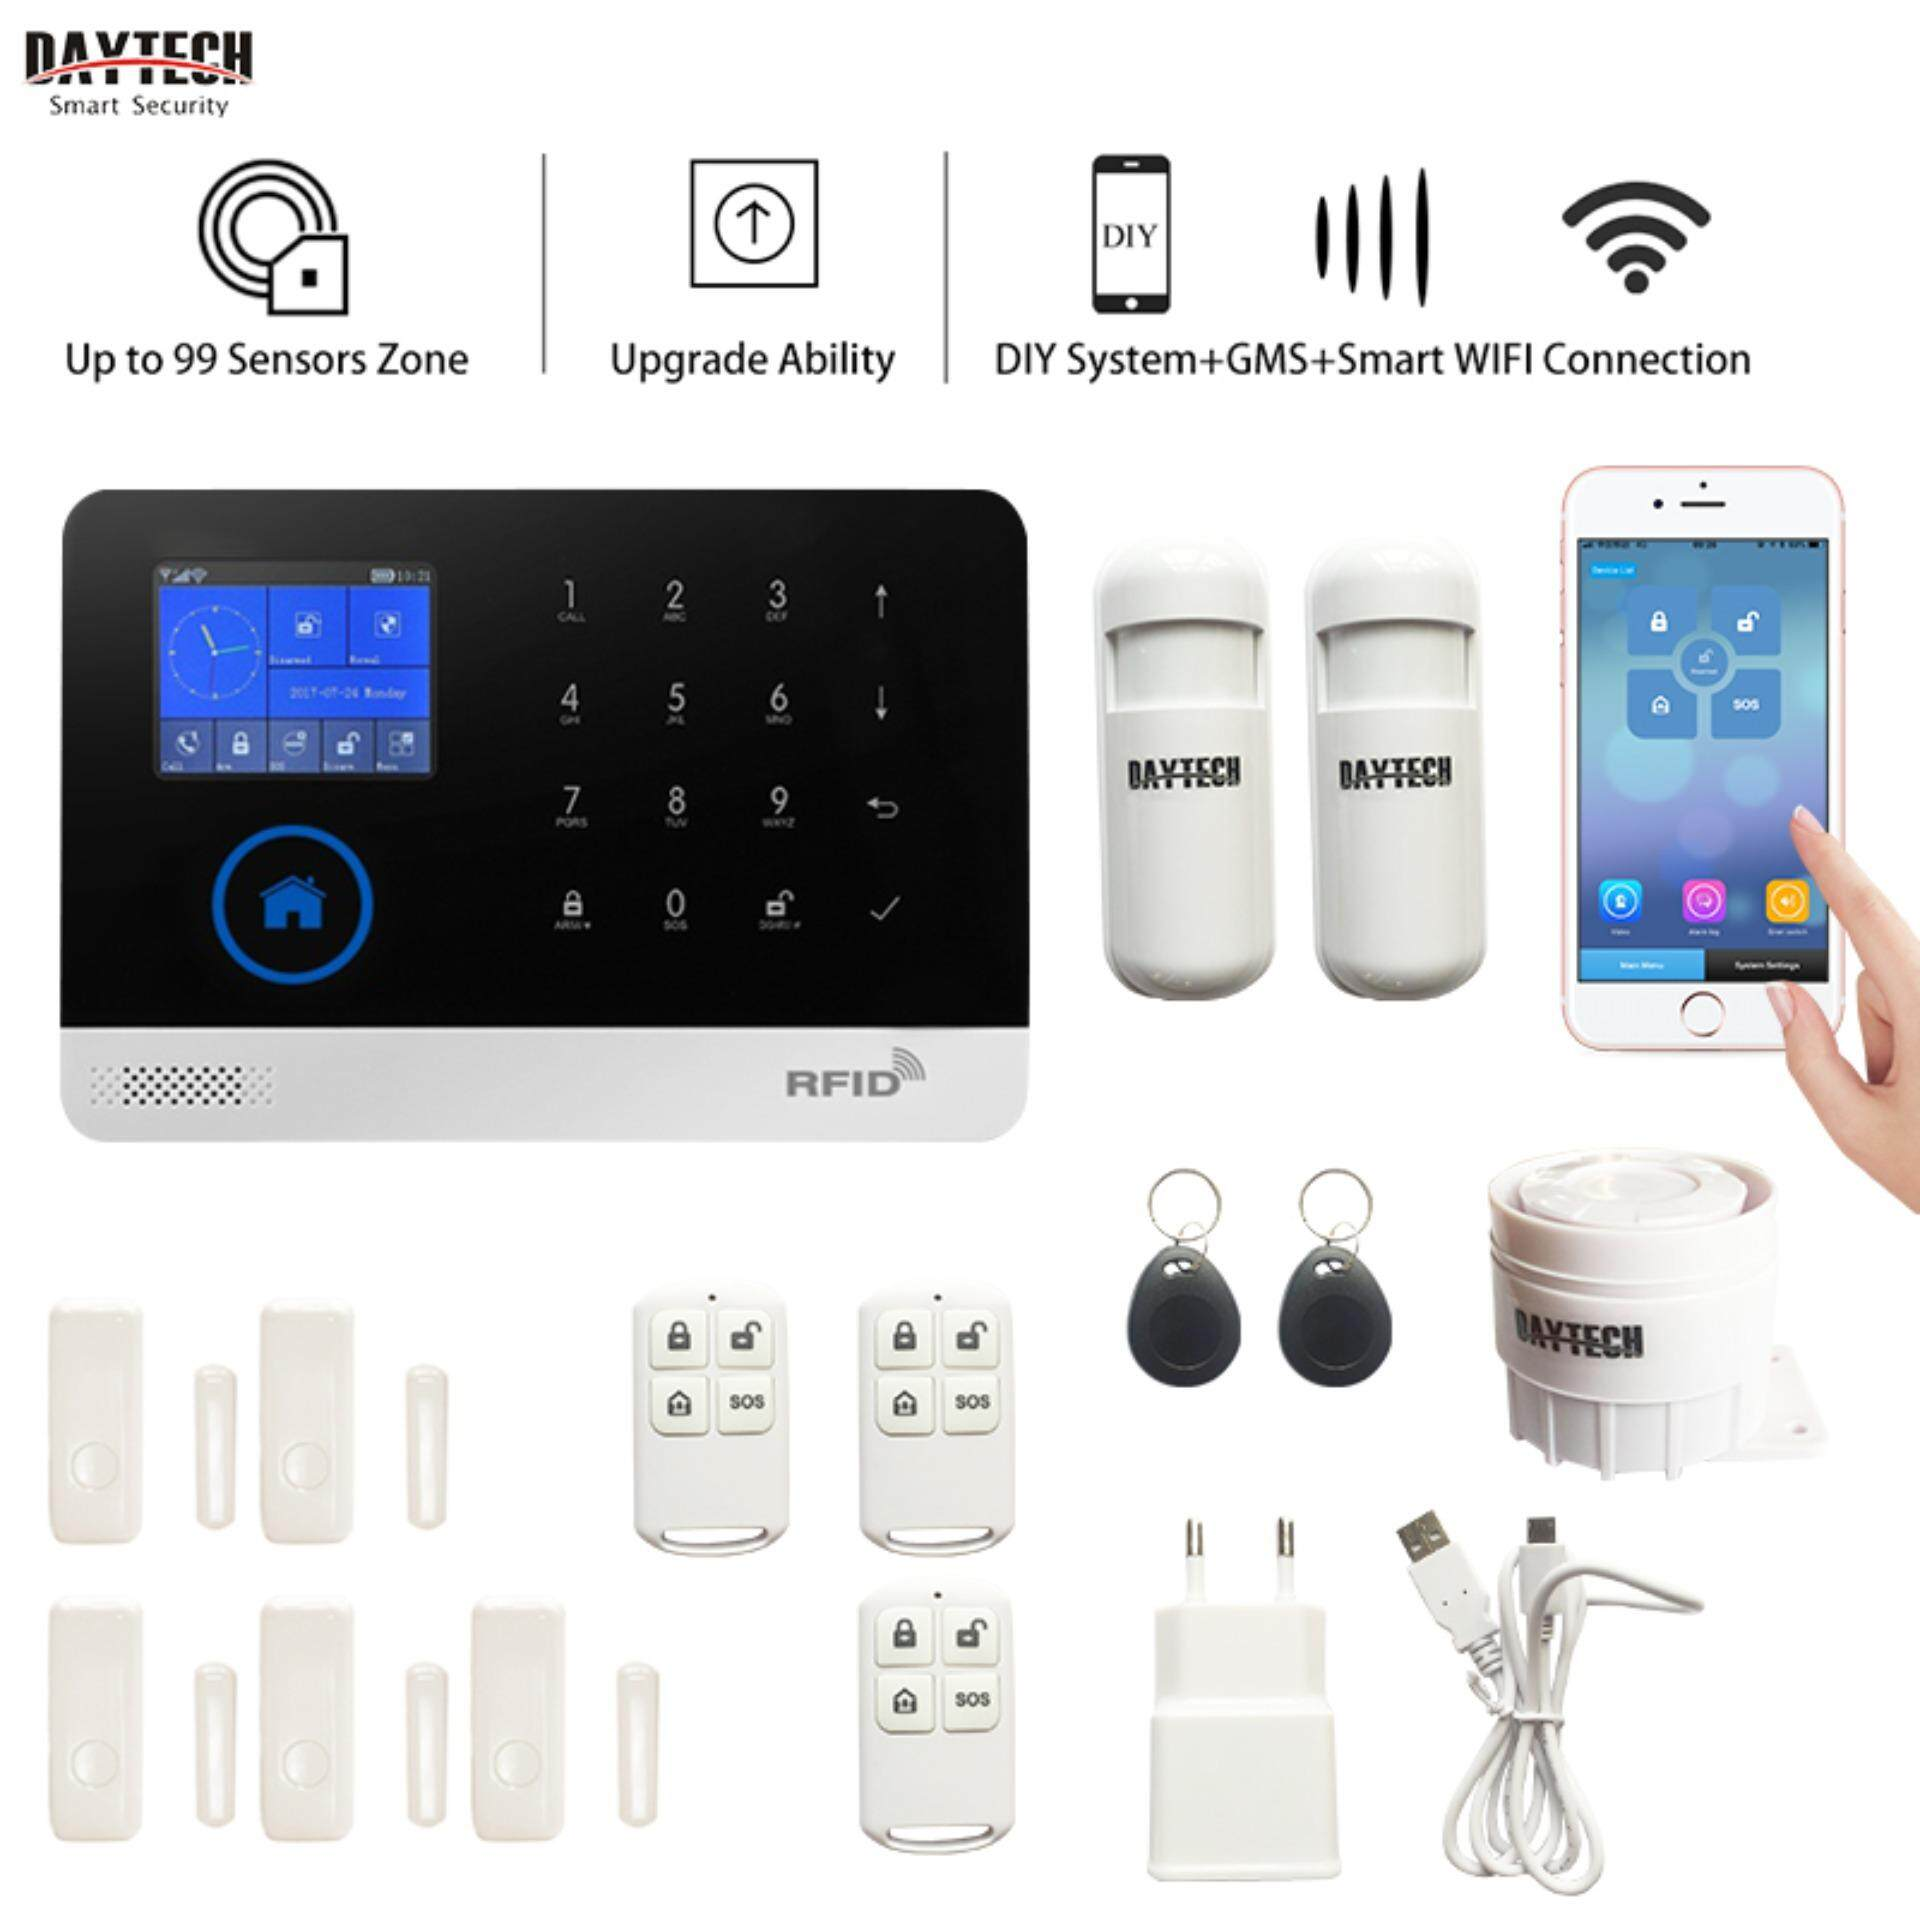 DAYTECH Wireless WiFi/GSM Alarm System Smart Home Security Alarm System Kit With Motion Detector Door Sensor iOS Android Phone APP Remotely Control KIT3